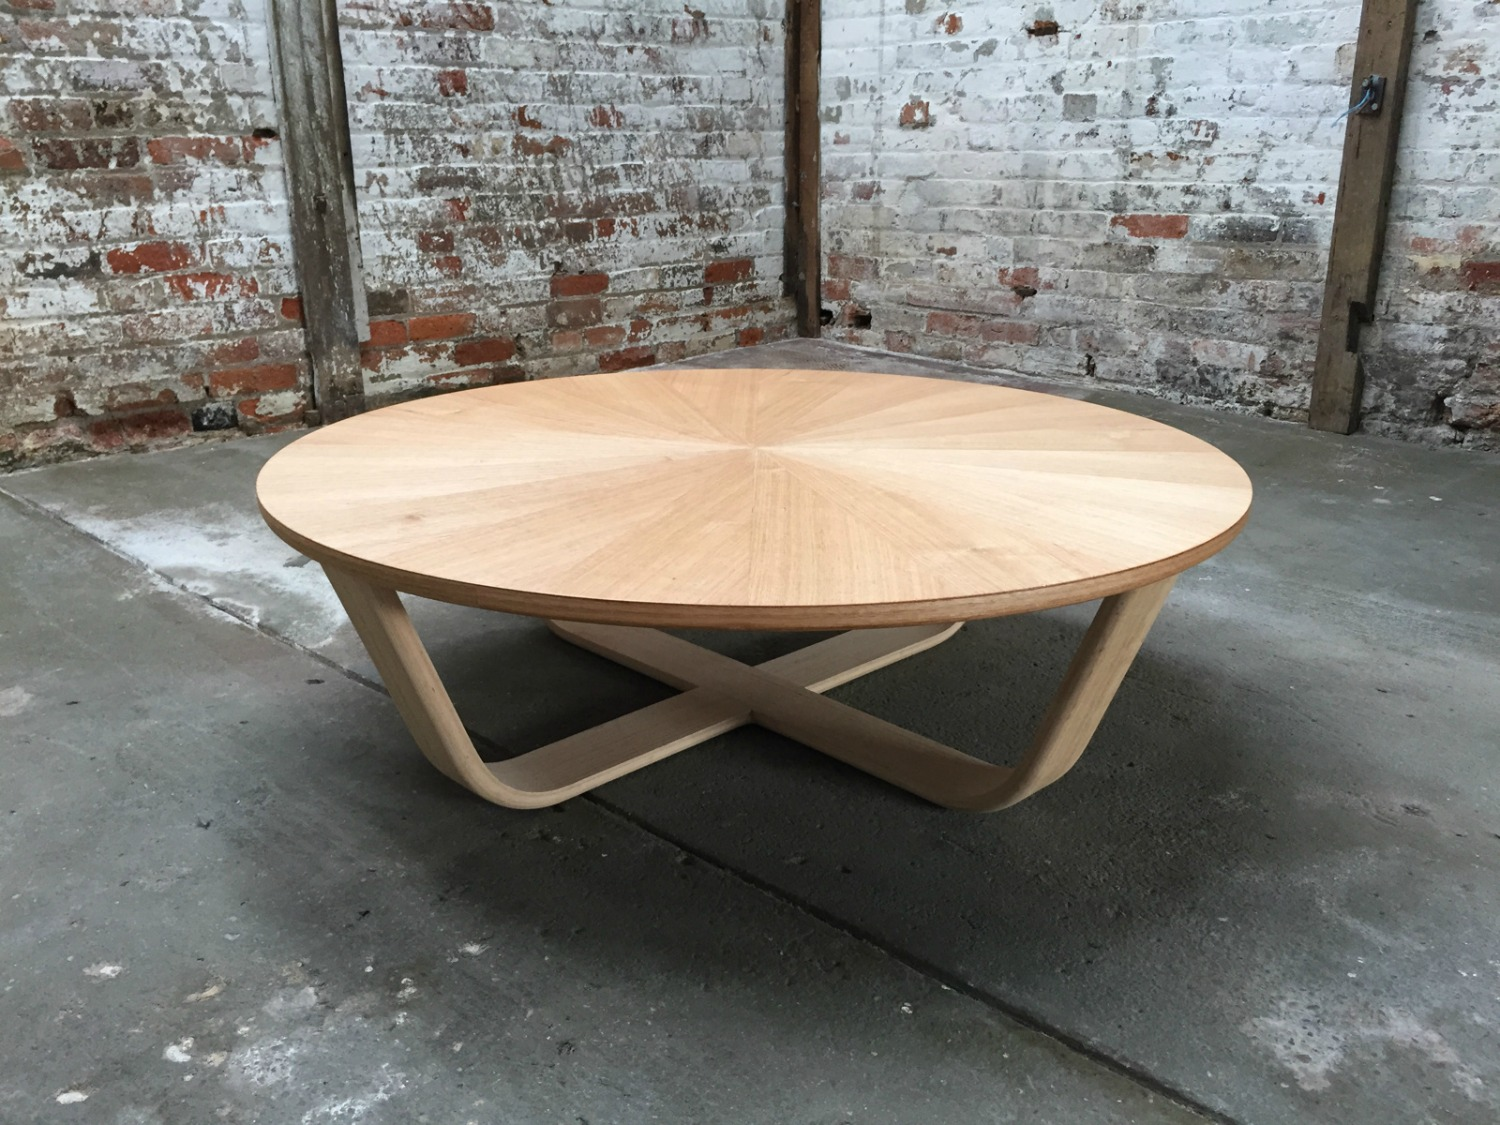 This striking handcrafted coffee table was designed by  Simon Ancher Studio , in Launceston TAS. A sunburst pattern is created by arranging veneer sheets around a centre point. The tapered shape of each segment draws the eye to the centre of the table.